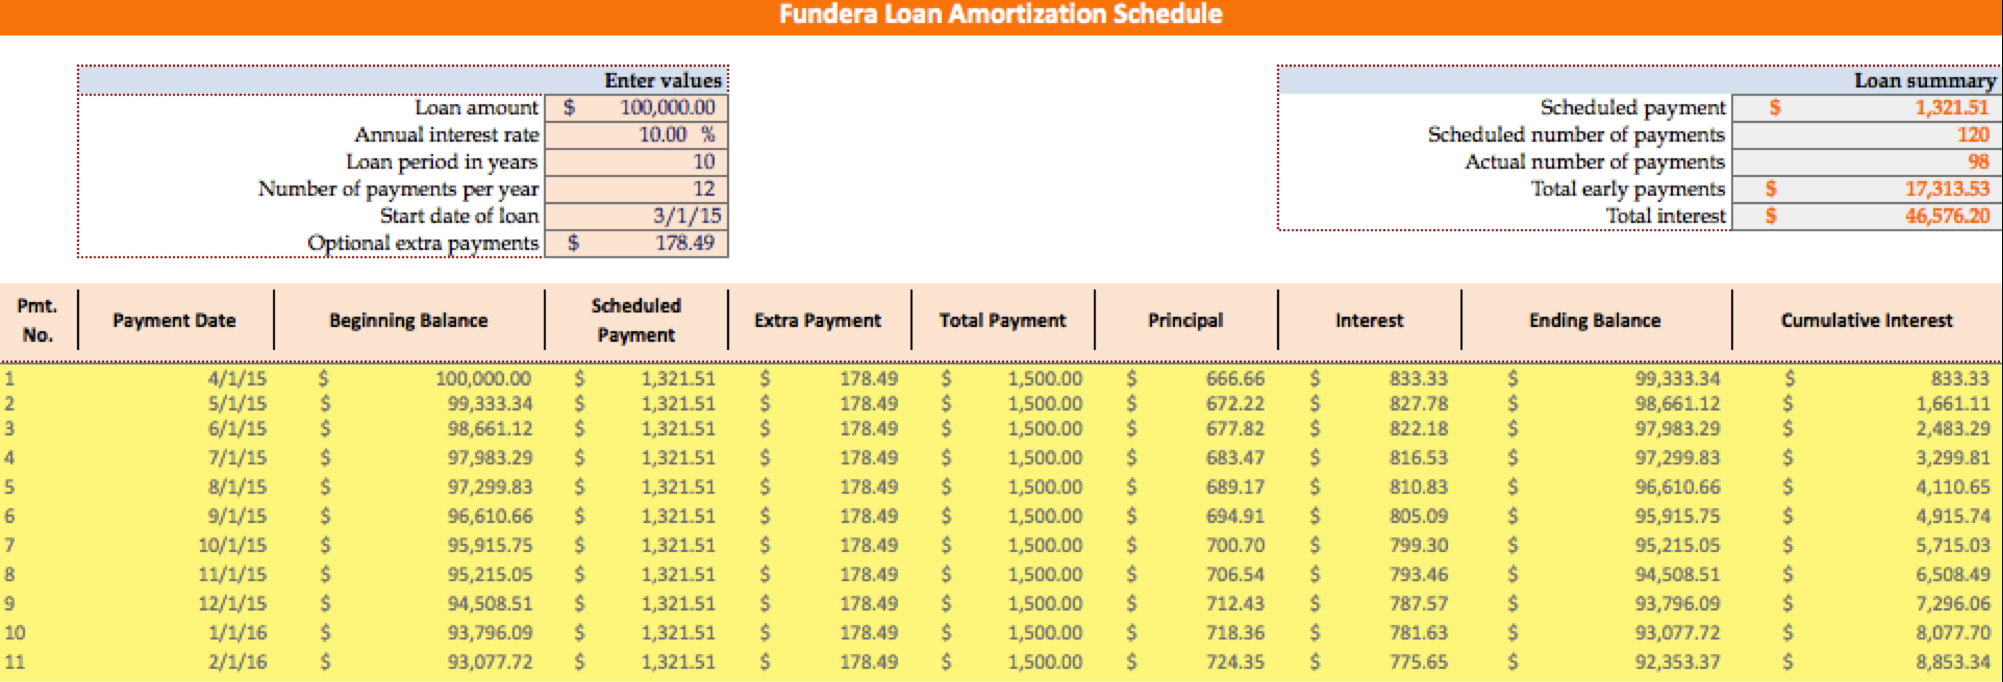 Loan Amortization Schedule: How To Calculate Payments To Loan Amortization Spreadsheet